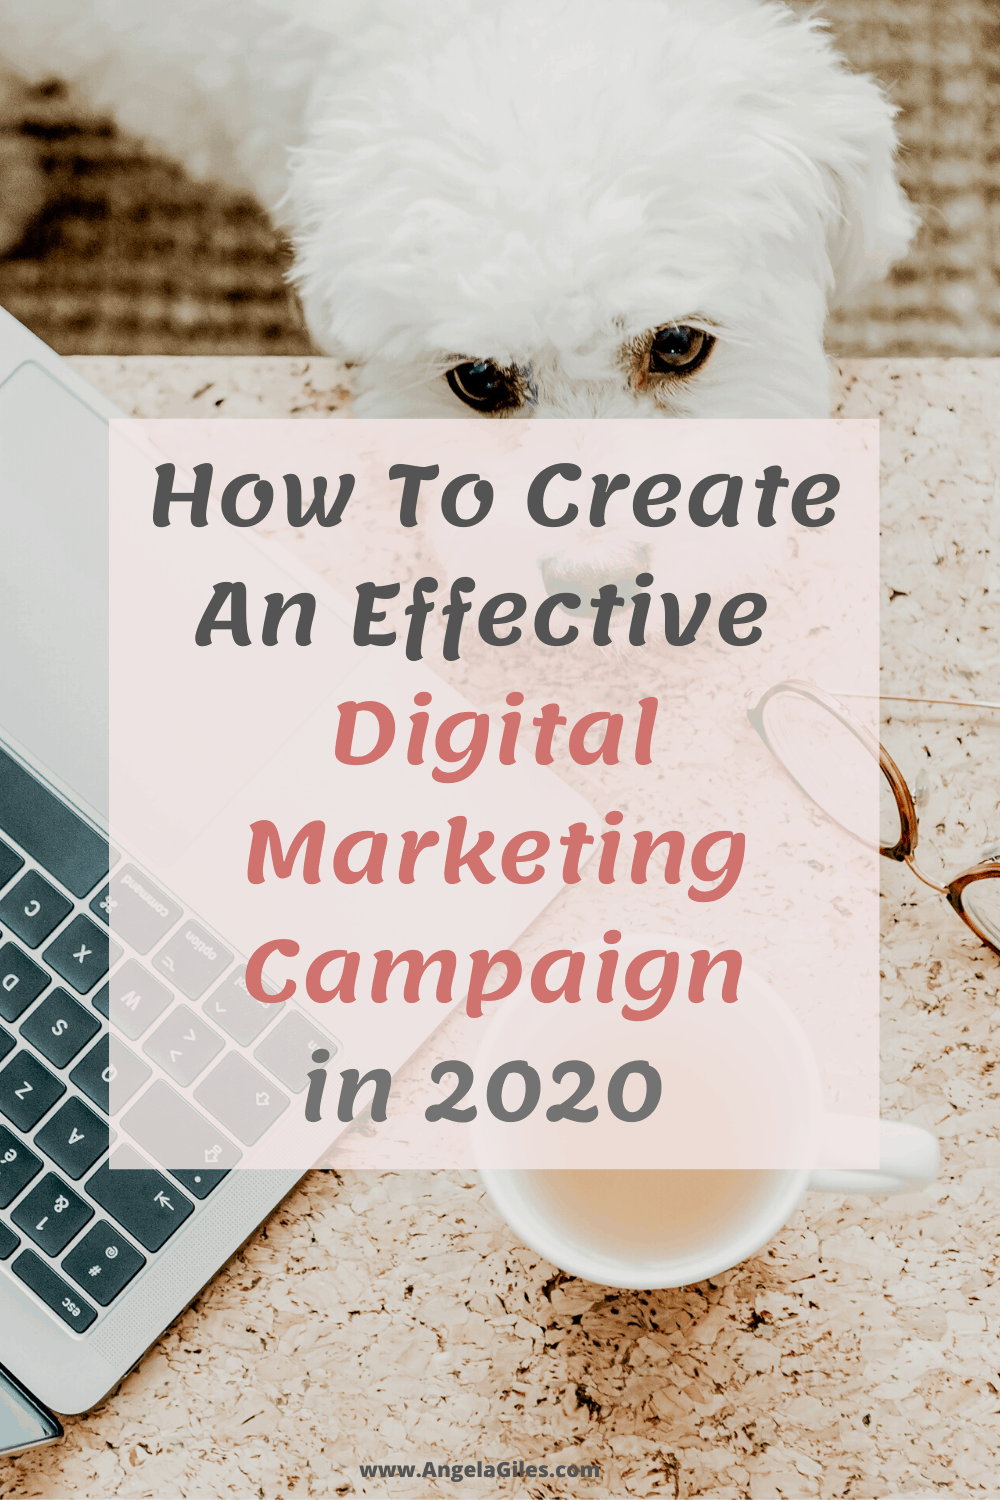 Learn how to design, create, plan your best ever digital marketing campaign.  This inspirational article will give you ideas and examples that will help you with your advertising, social media and overall marketing campaign.  #marketingcampaigndesign #marketingcampaignideas #marketingcampaigndexamples #marketingcampaignadvertising #marketingcampaigninspiration #marketingcampaignplan #marketingcampaignvisual #marketingcampaignsocialmedia #marketingcampaigndigital #marketingcampaign...